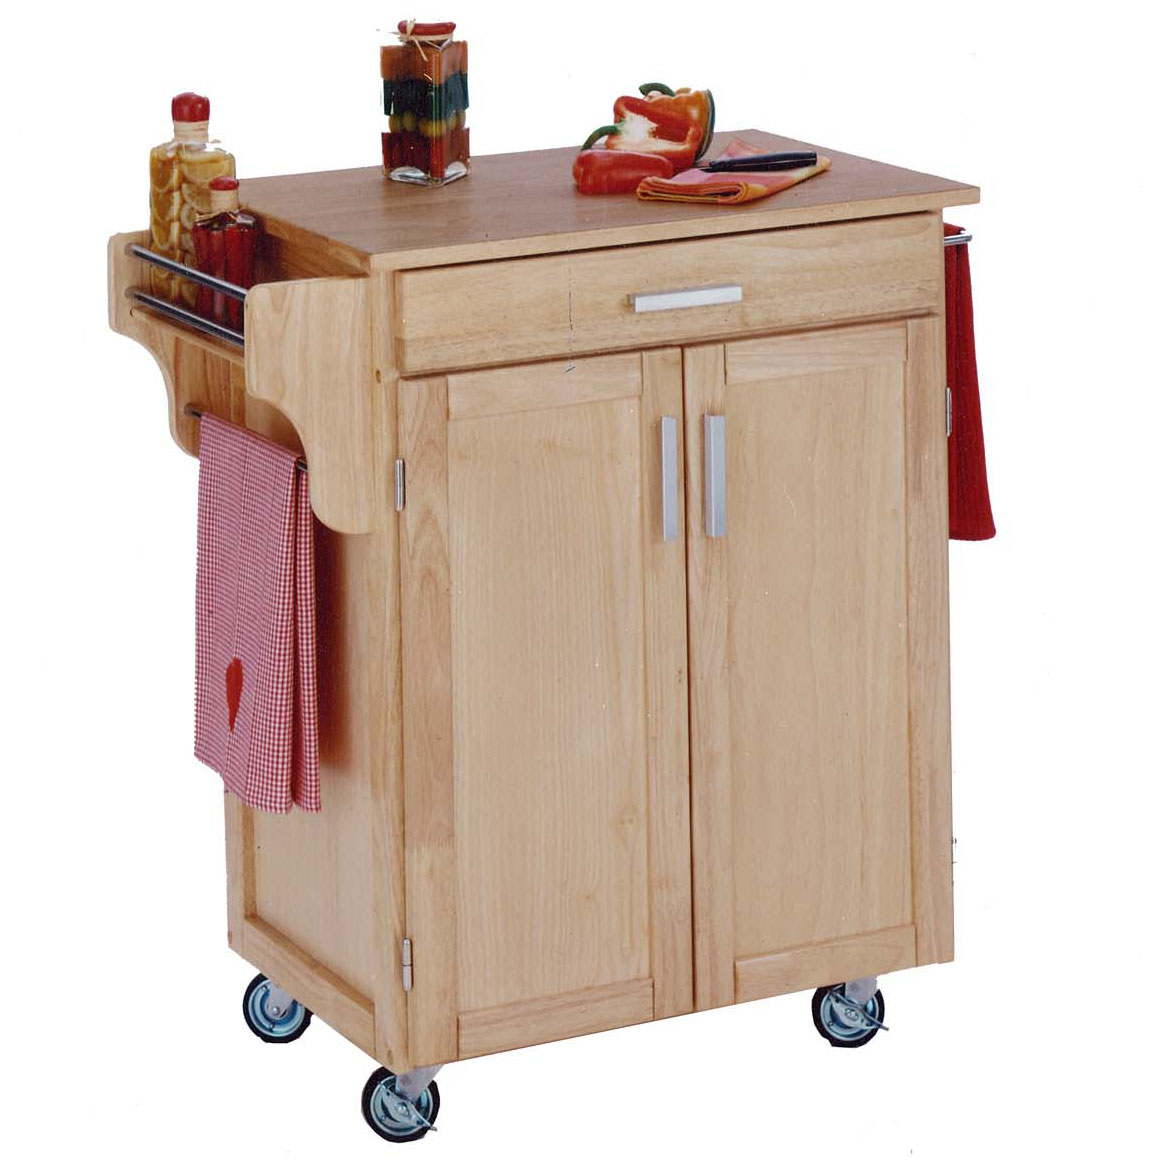 Cuisine Natural Wood Kitchen Cart with Wood Top, NATURAL WOOD